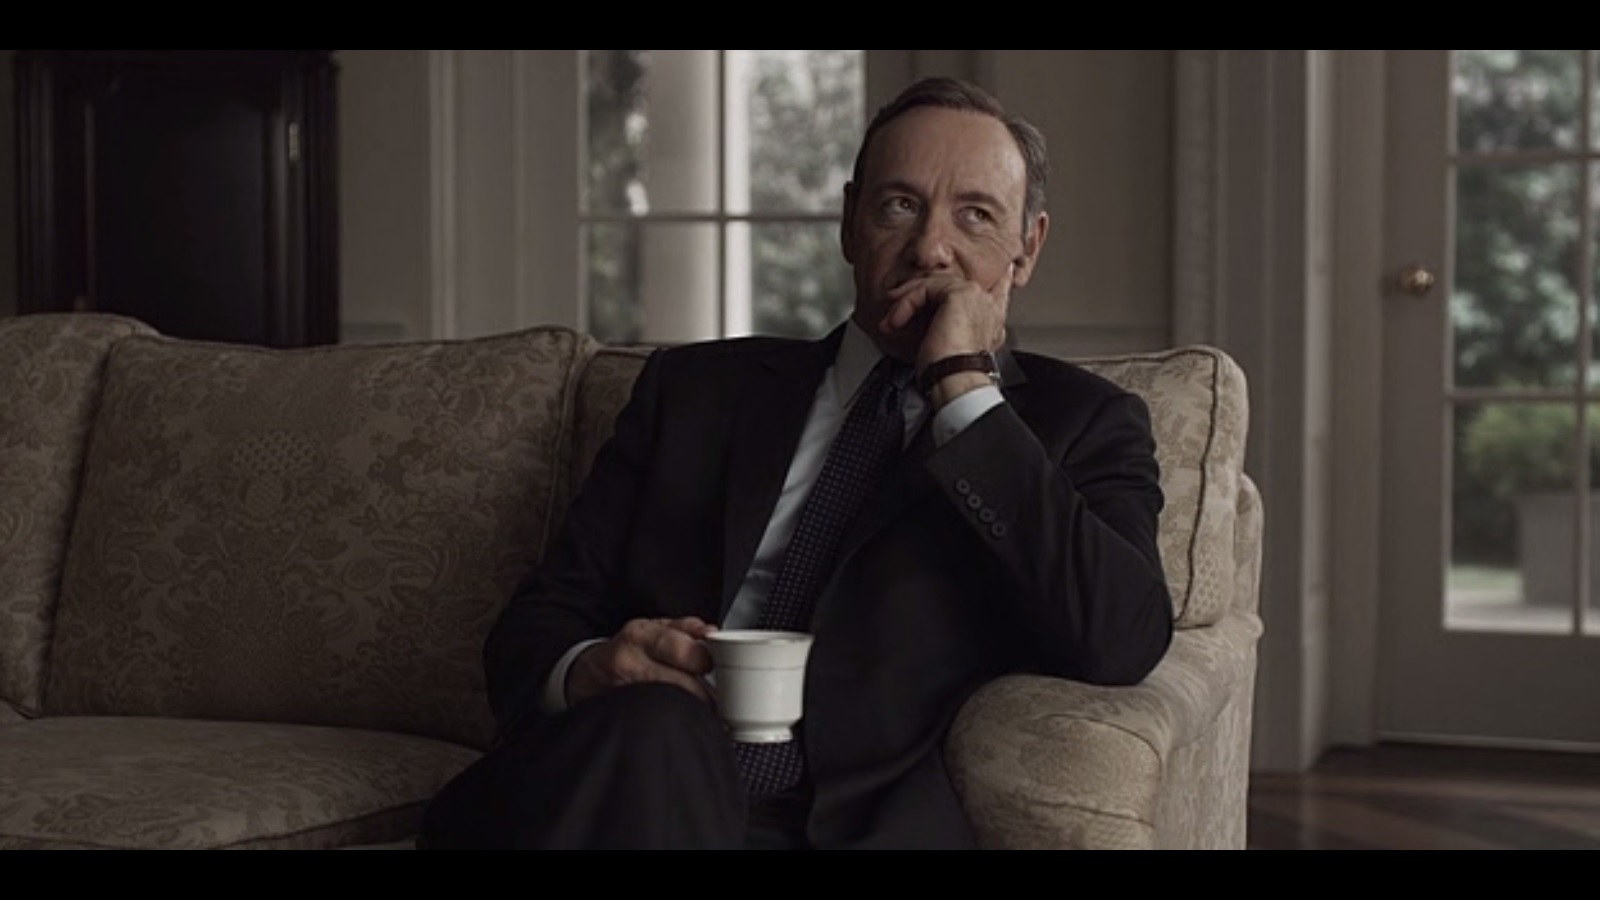 Free Download Frank Underwood House Of Cards Wallpaper Quotes